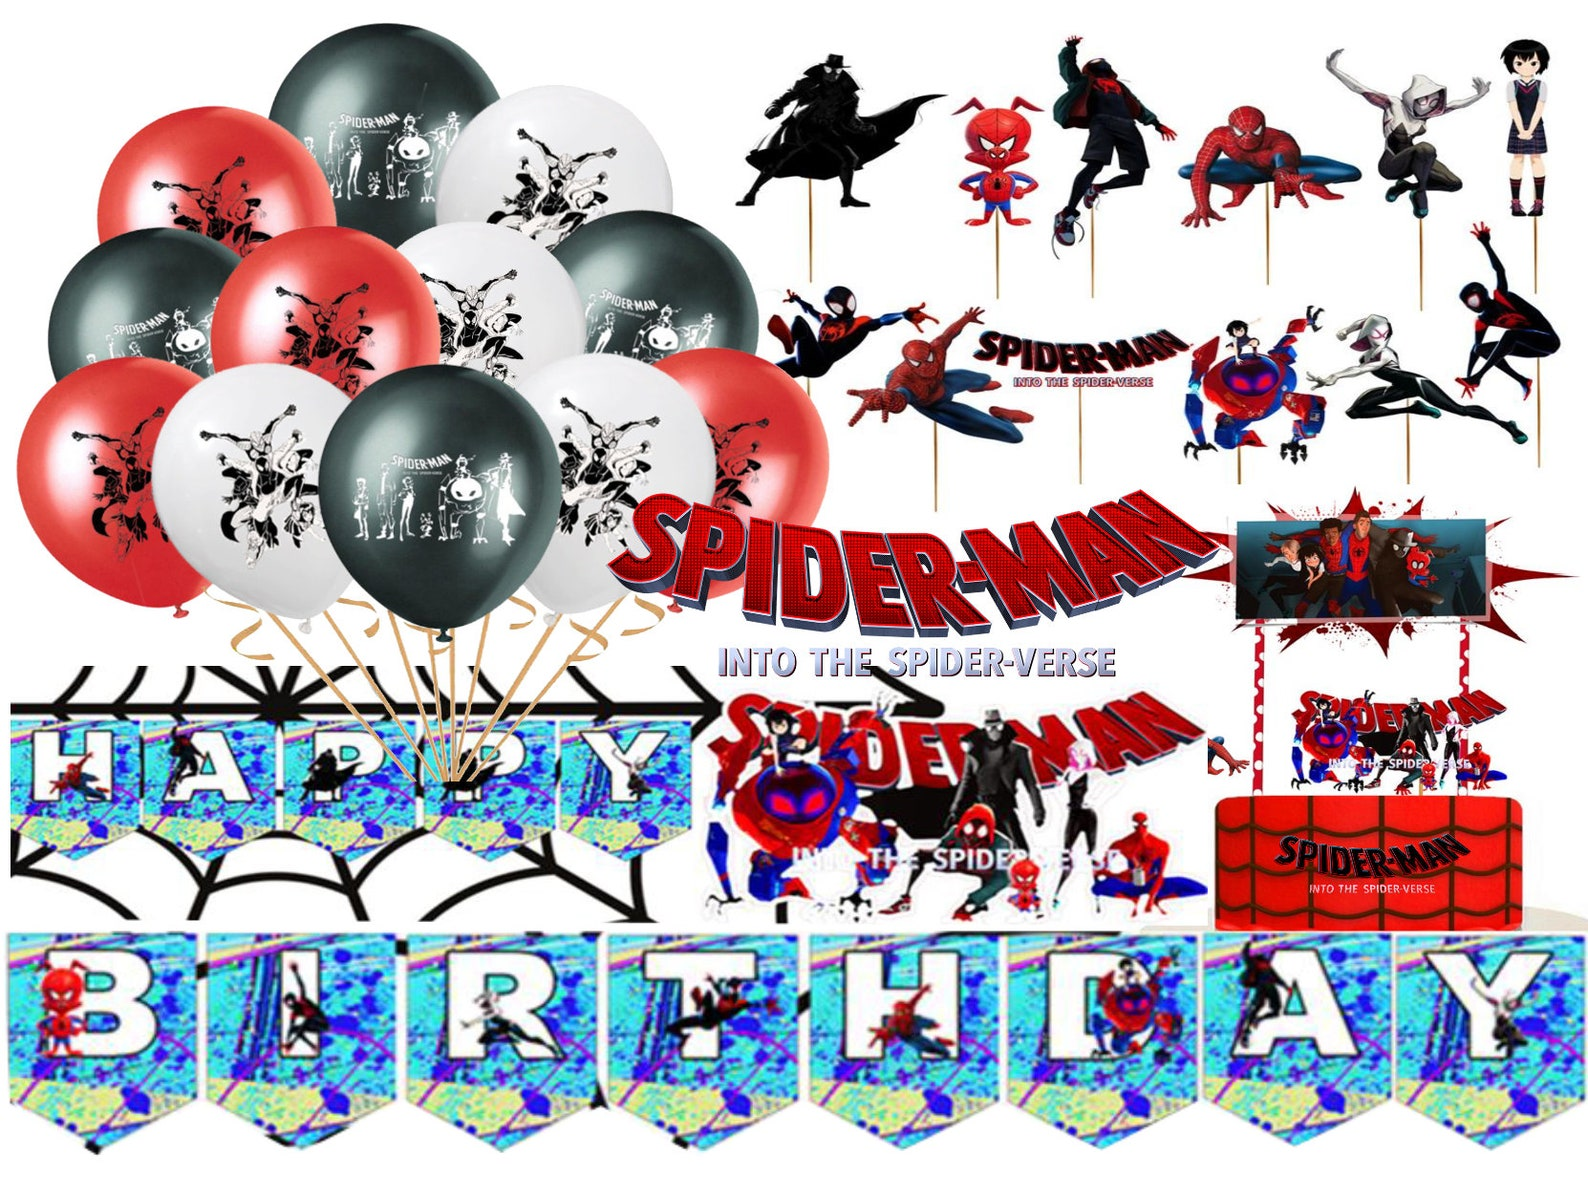 Spiderman Party Bundles for 6 Guests